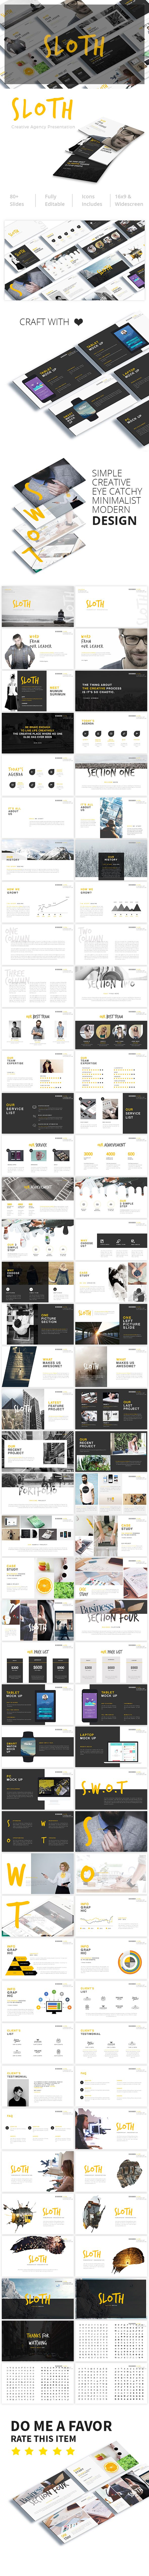 Sloth creative agency powerpoint template creative powerpoint sloth creative agency powerpoint template creative powerpoint templates toneelgroepblik Images